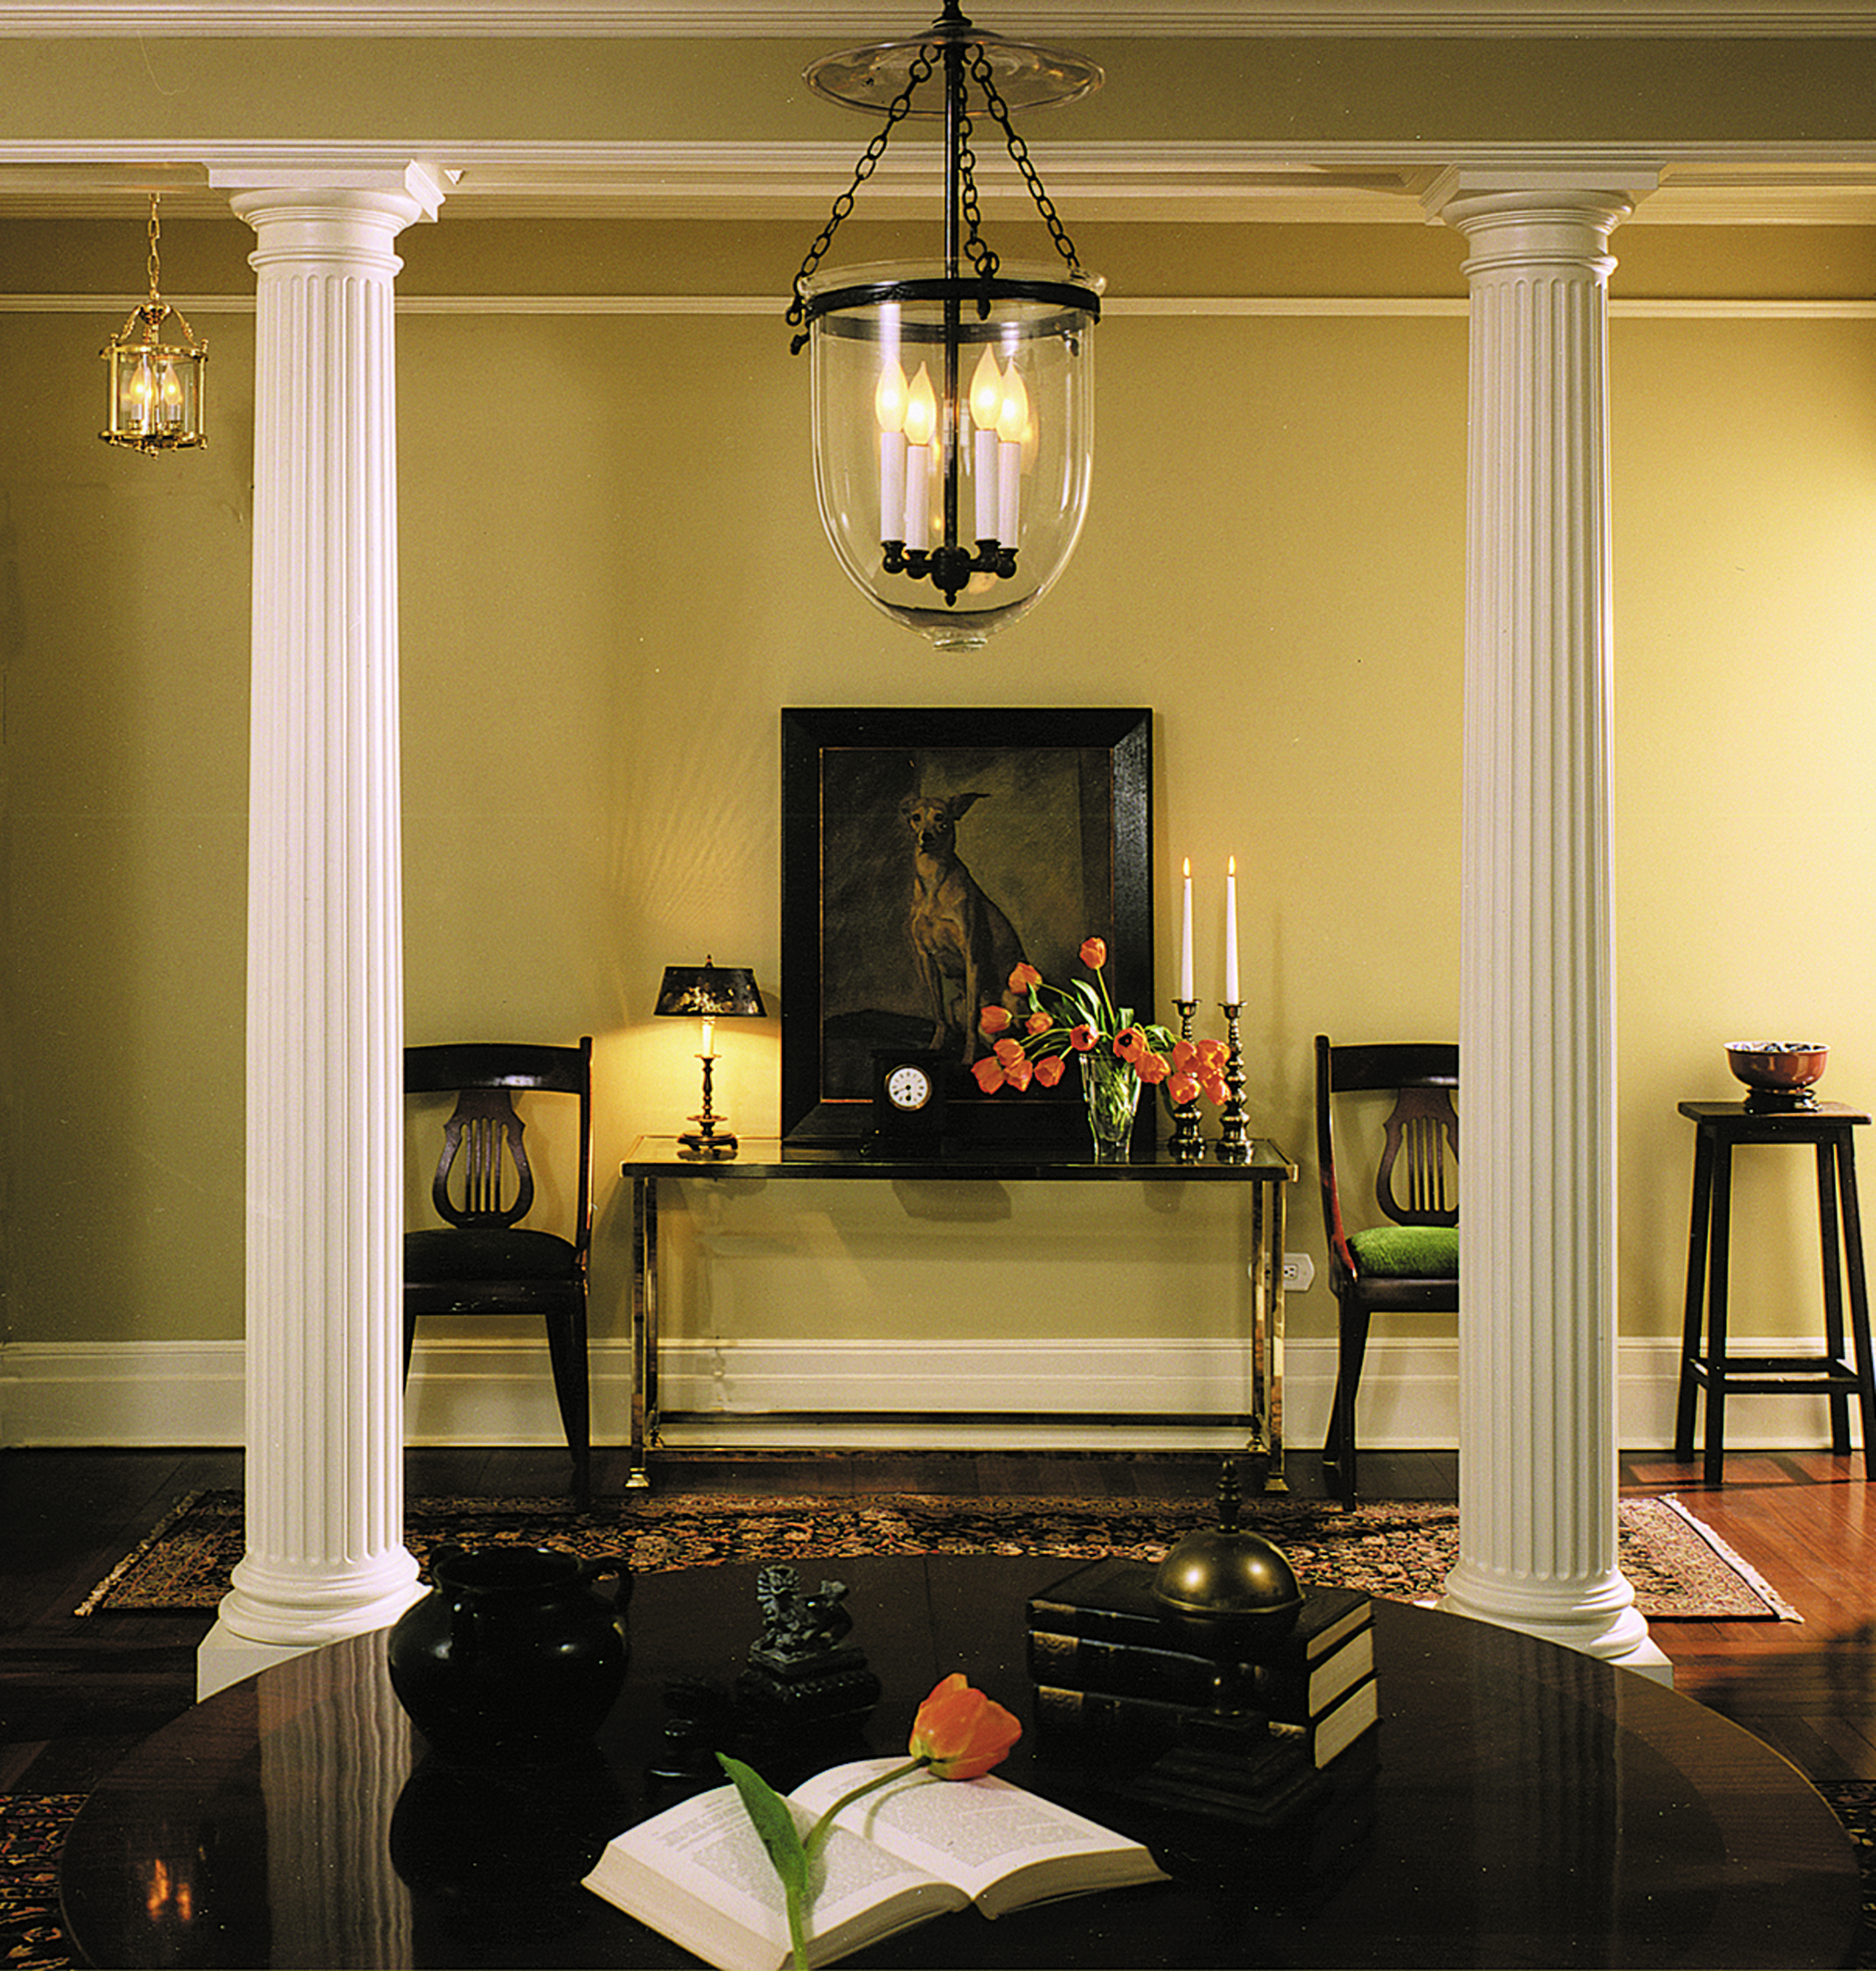 Chadsworth Column Designs 131 Ionic Order Door 8 Jpg